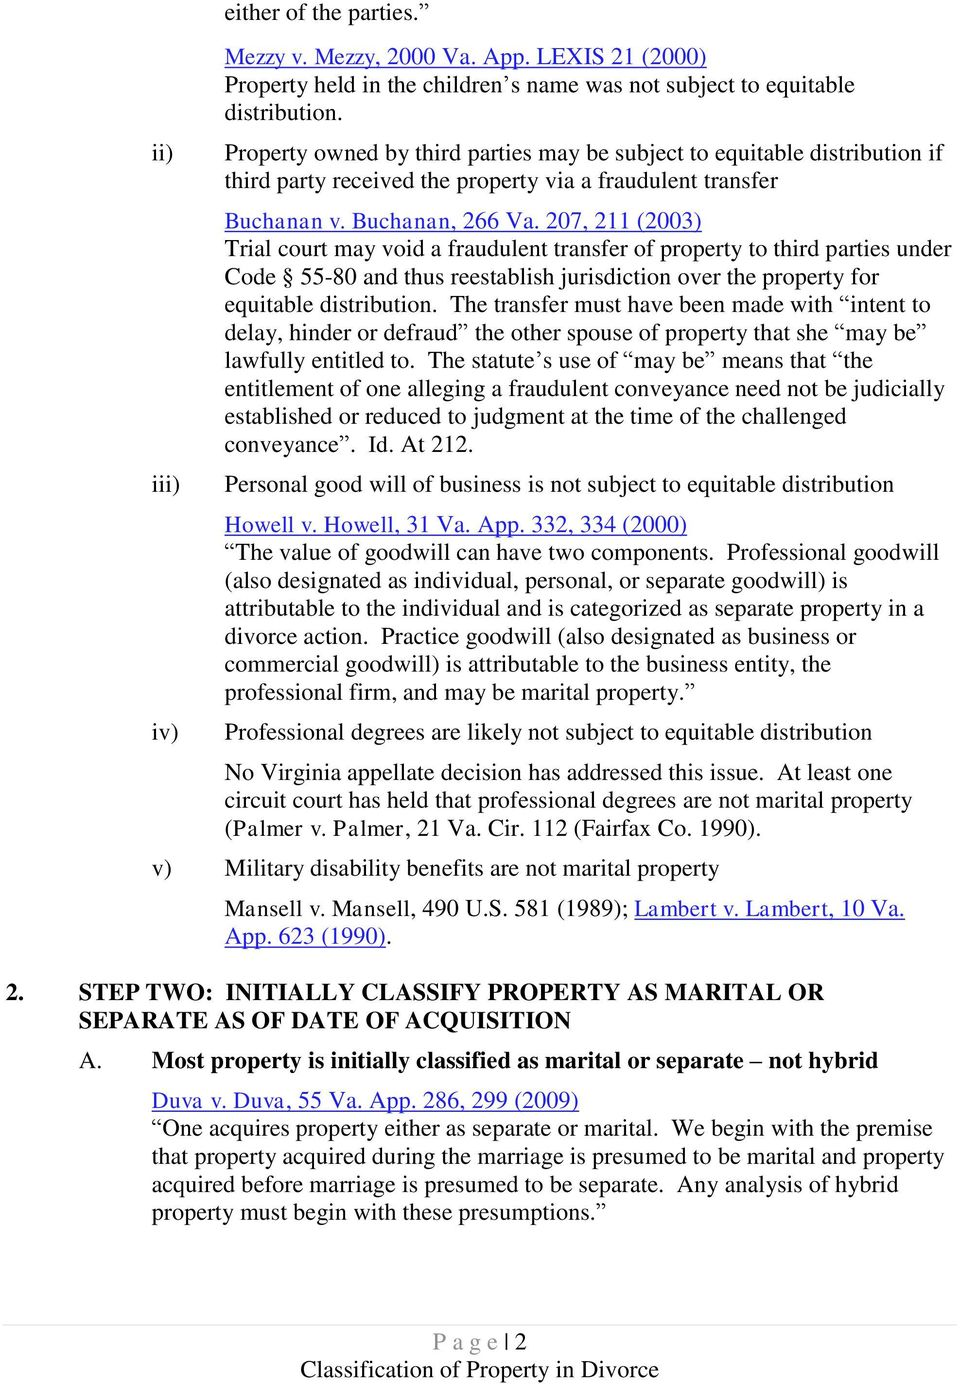 207, 211 (2003) Trial court may void a fraudulent transfer of property to third parties under Code 55-80 and thus reestablish jurisdiction over the property for equitable distribution.